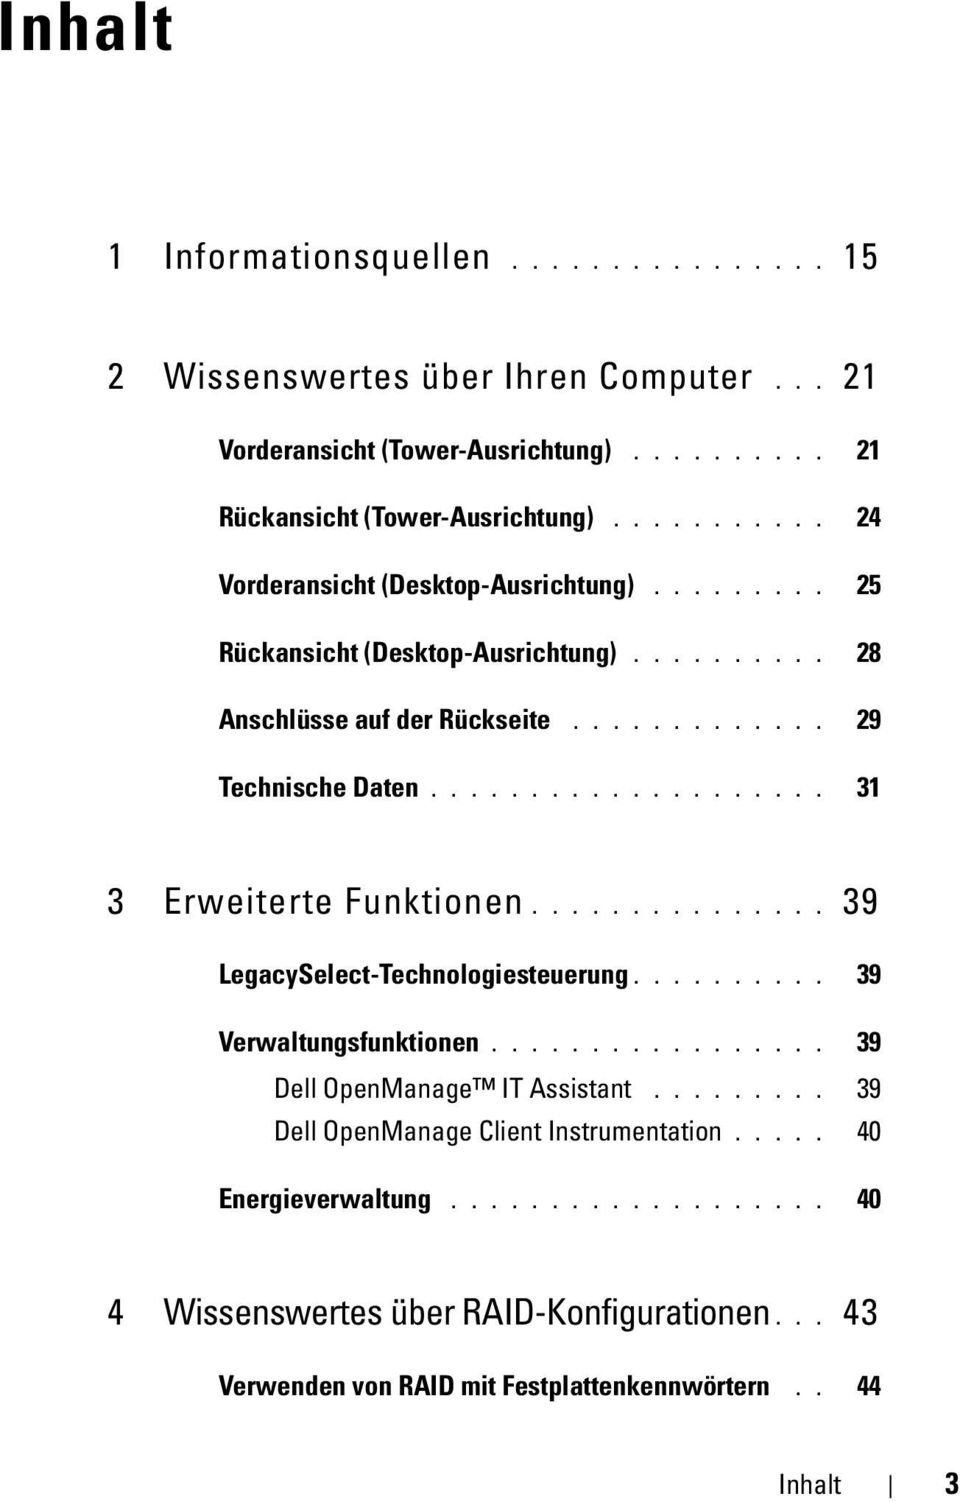 ................... 31 3 Erweiterte Funktionen............... 39 LegacySelect-Technologiesteuerung.......... 39 Verwaltungsfunktionen................. 39 Dell OpenManage IT Assistant.